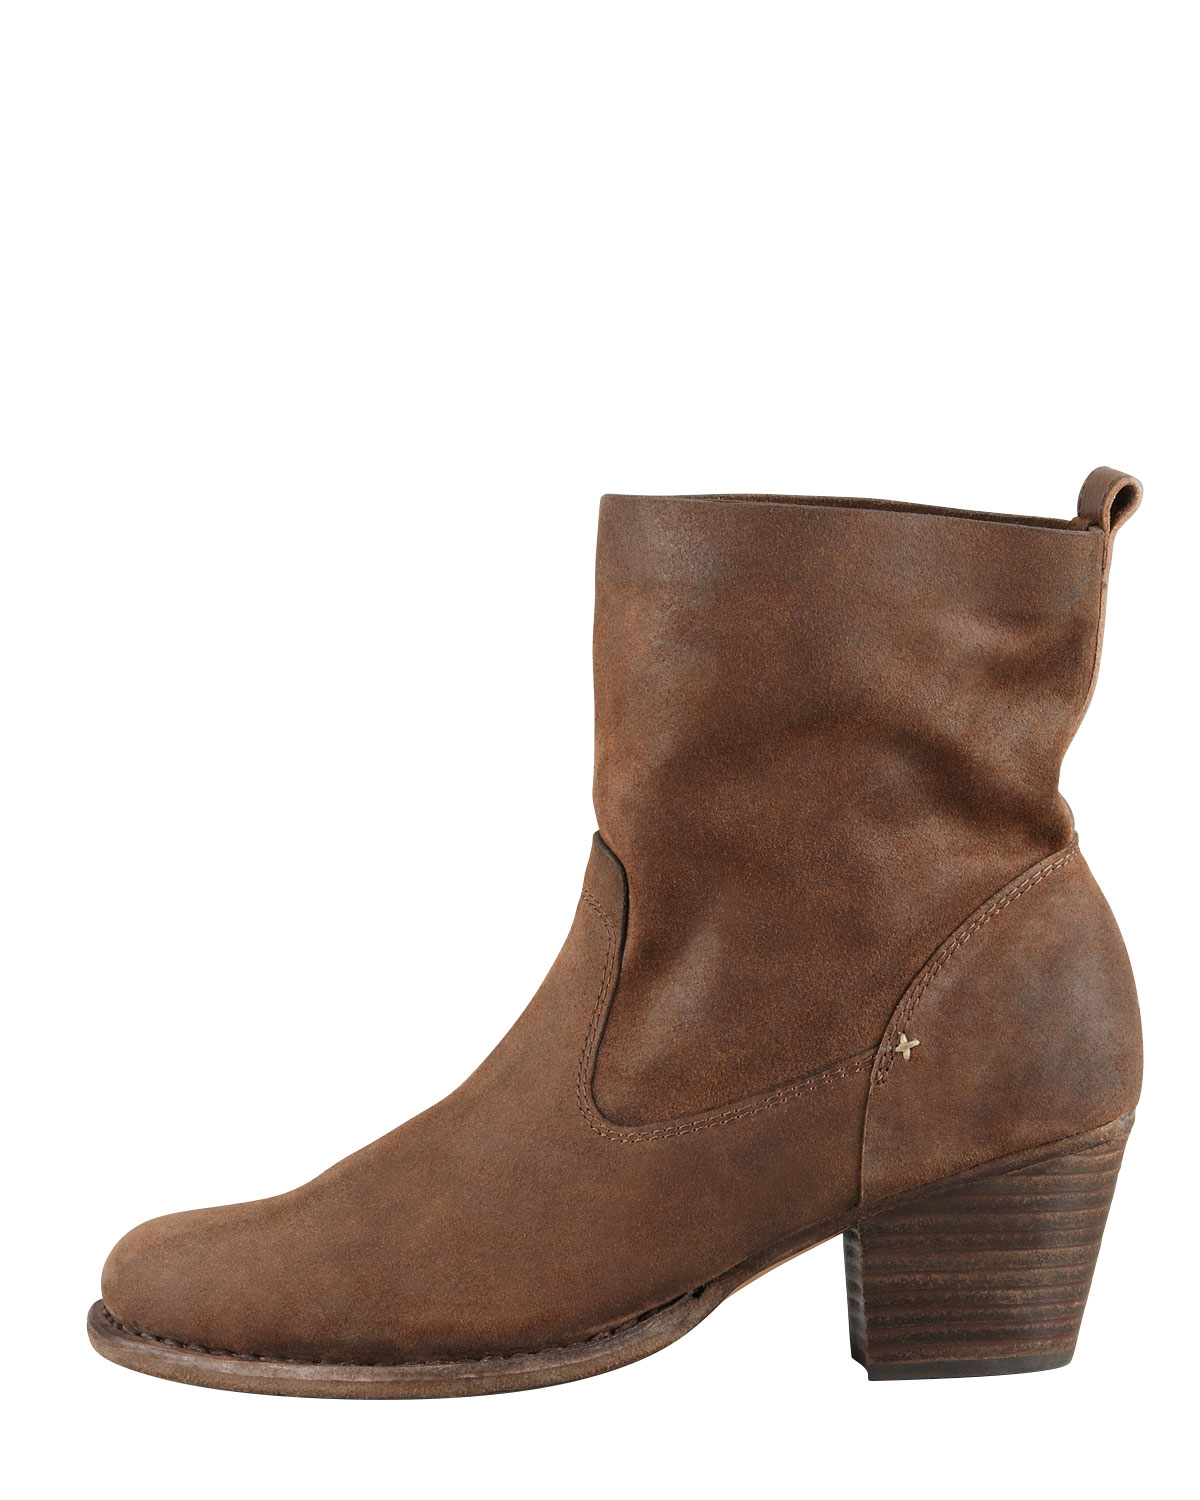 Womens Brown Leather Ankle Boots EfOusW9S